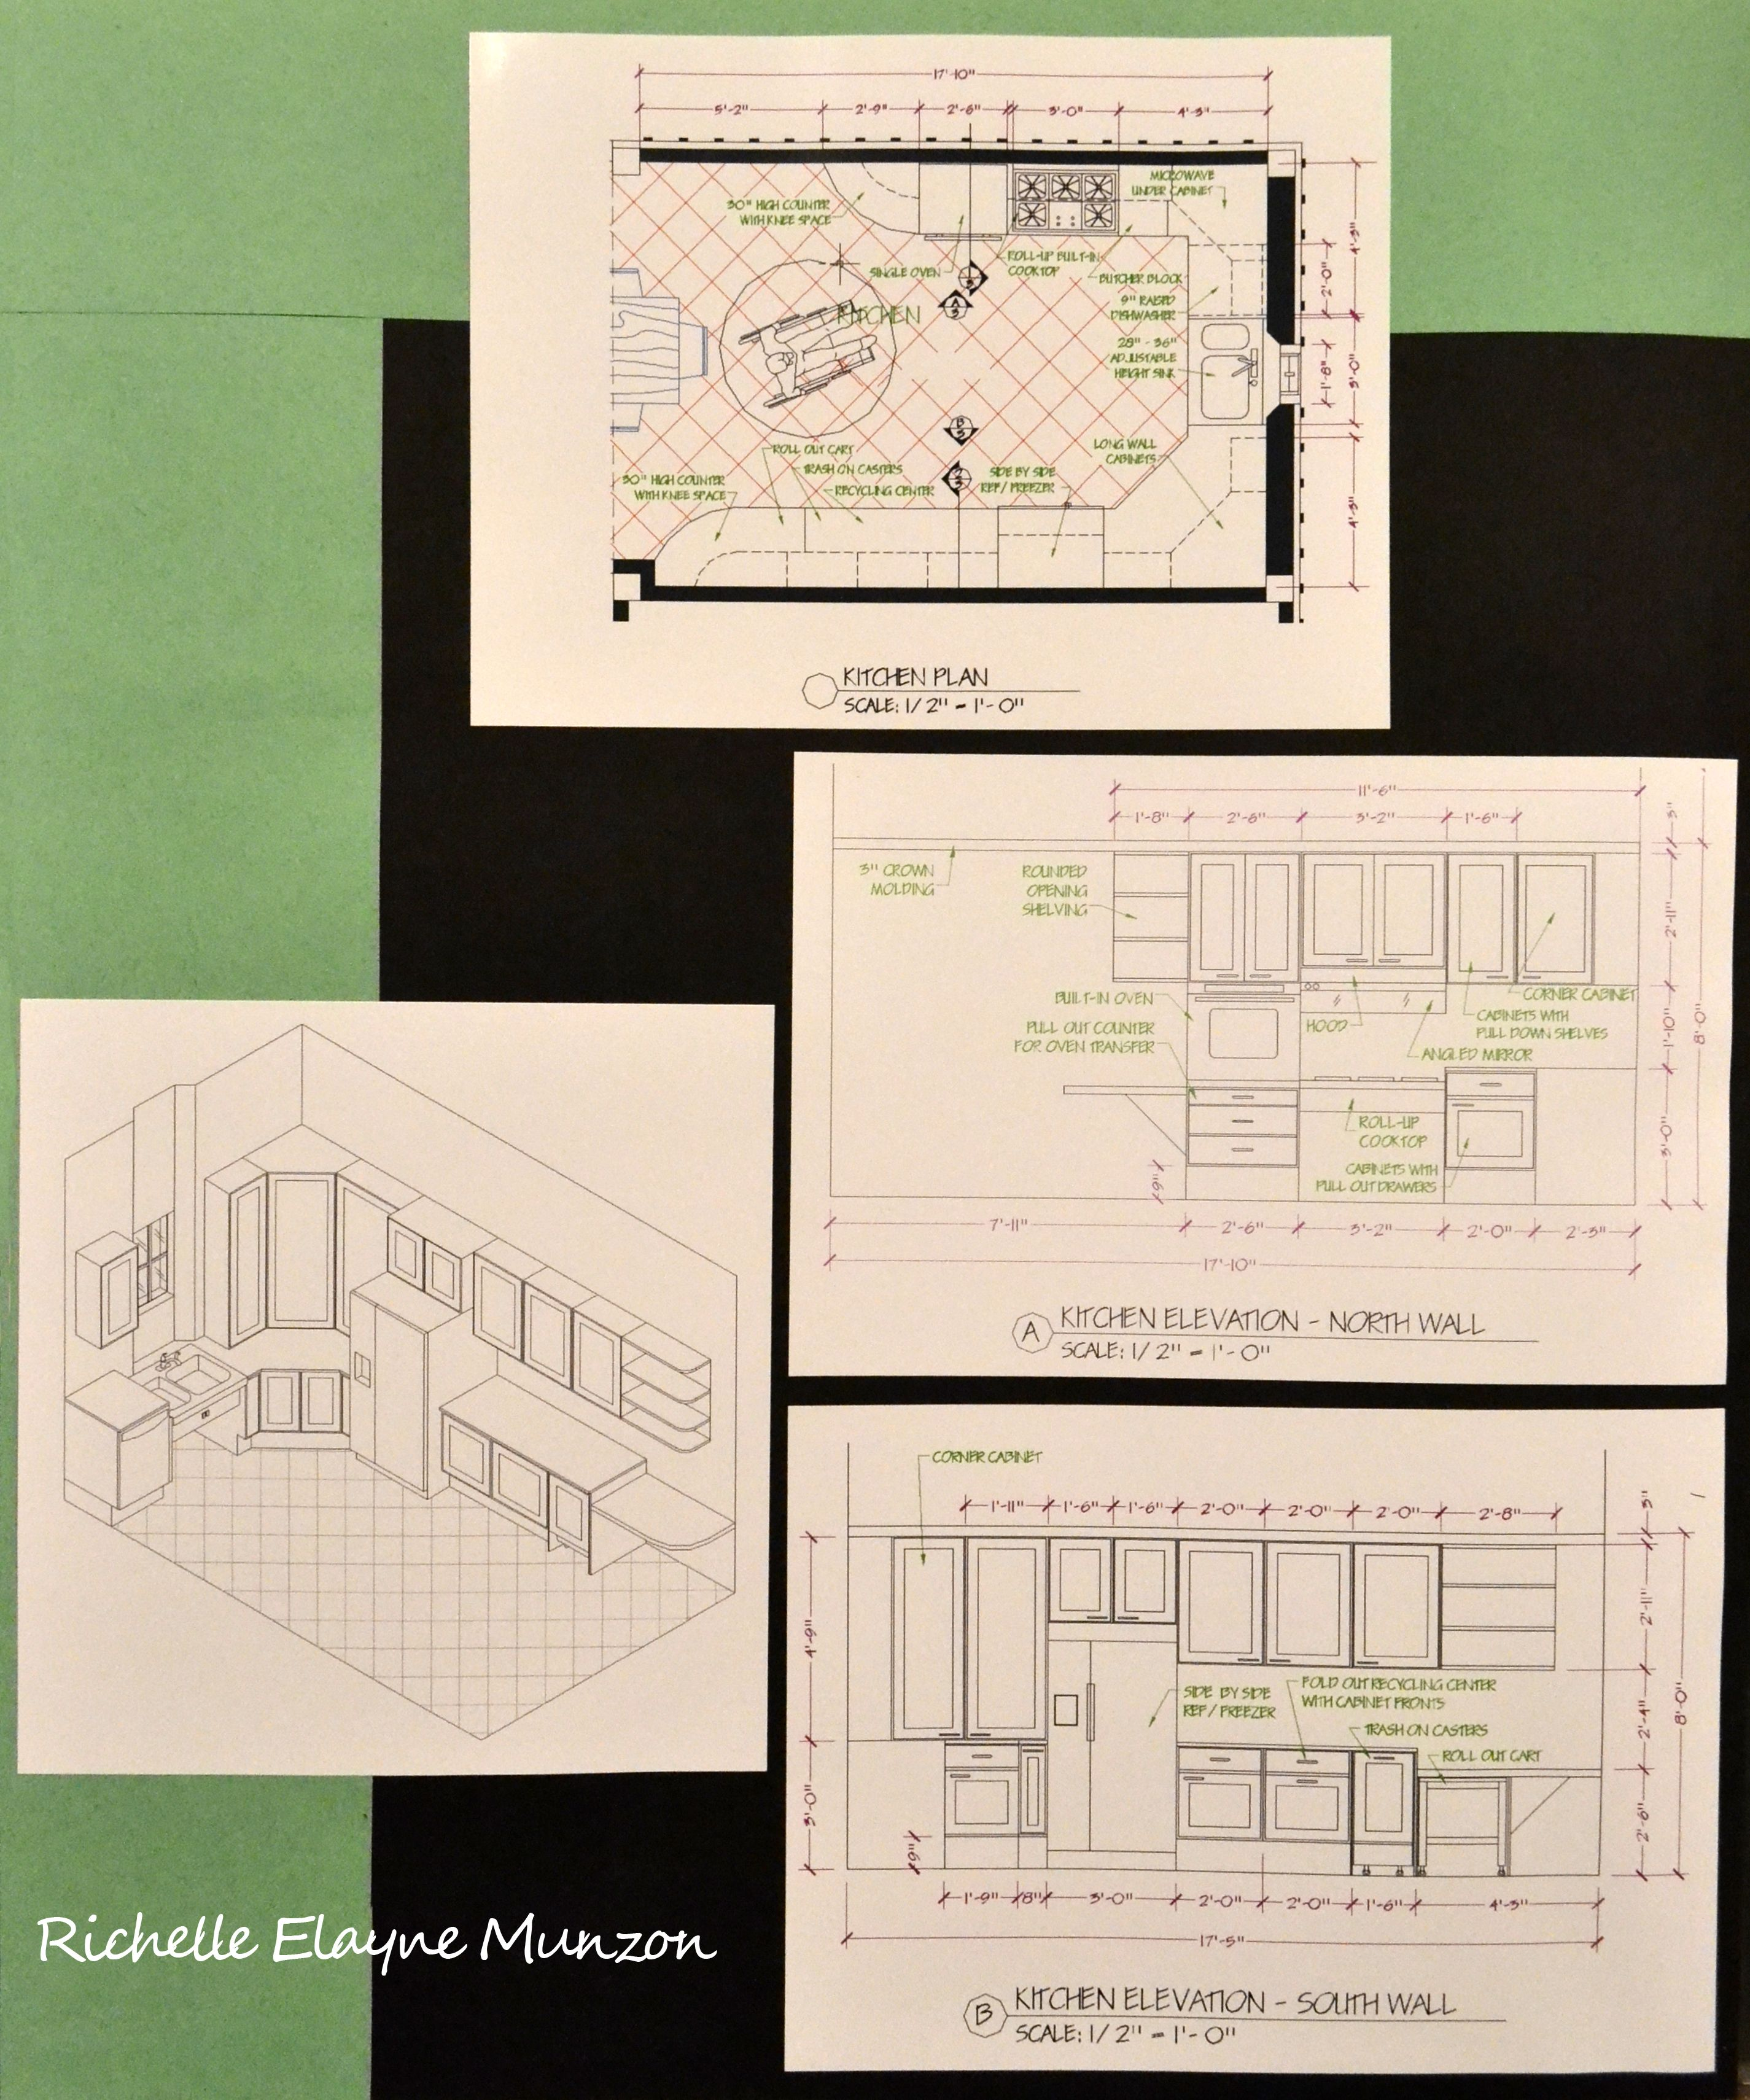 AutoCAD Floor Plan, Elevation And Perspective Drawings By